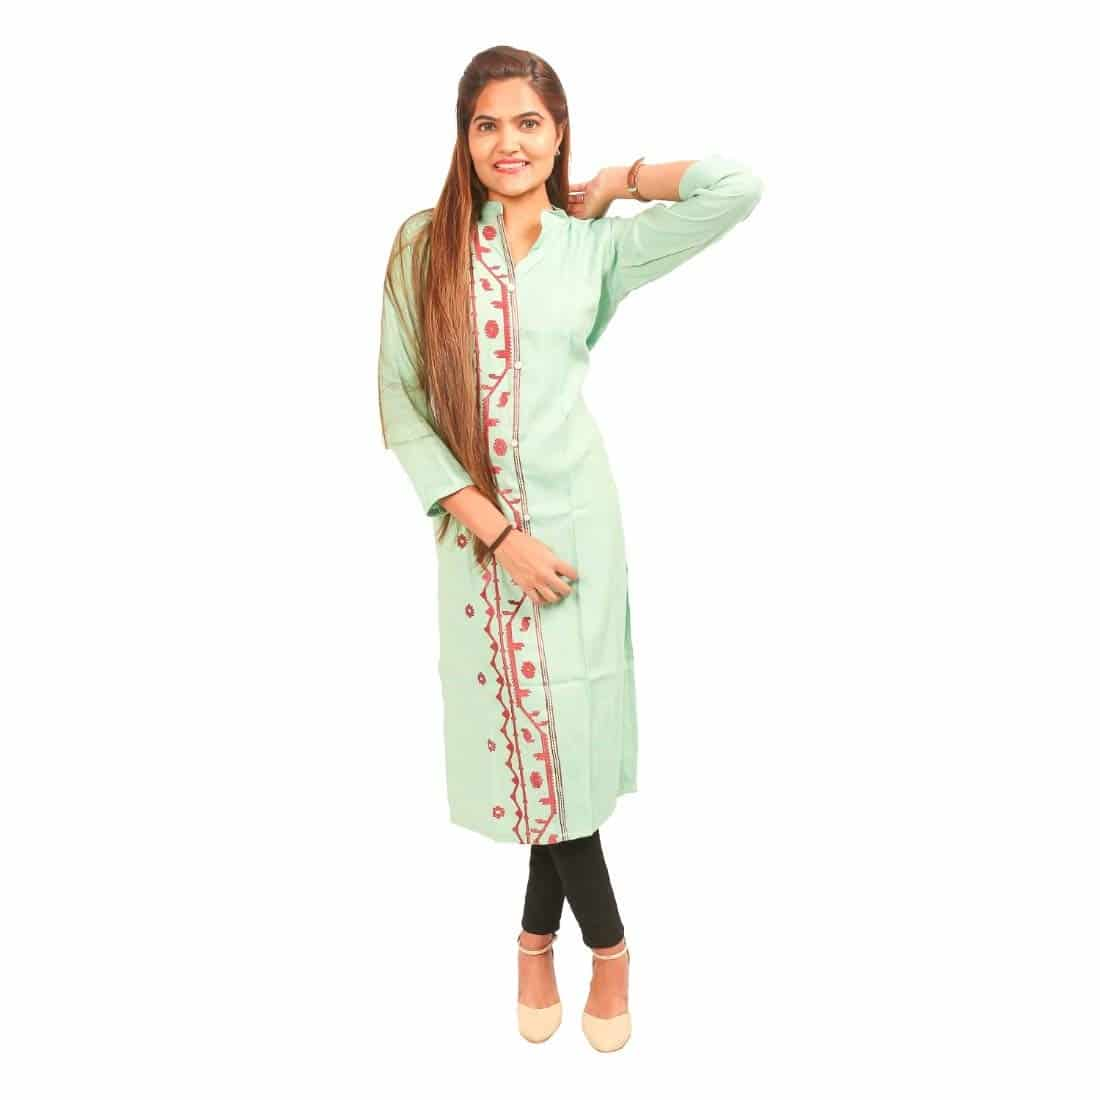 N's Boutique Green Cotton Straight Kurti for Women  N's Boutique is a women's ethnic and fusion wear value brand. Our range is sharply priced and offers an array of products across solids, prints. We offer the right blend of quality, style and value aimed to delight our customers. #kurta #kurtaforwomen #womenkurta #straightkurta #womenstraightkurta #kurtiforwomen #womenkurti  Link : https://www.amazon.in/Ns-Boutique-Green-Cotton-Straight/dp/B07MMY9J1L/ref=sr_1_14?m=A2XEB0RLEQQ2DY&s=merchant-items&ie=UTF8&qid=1551789591&sr=1-14